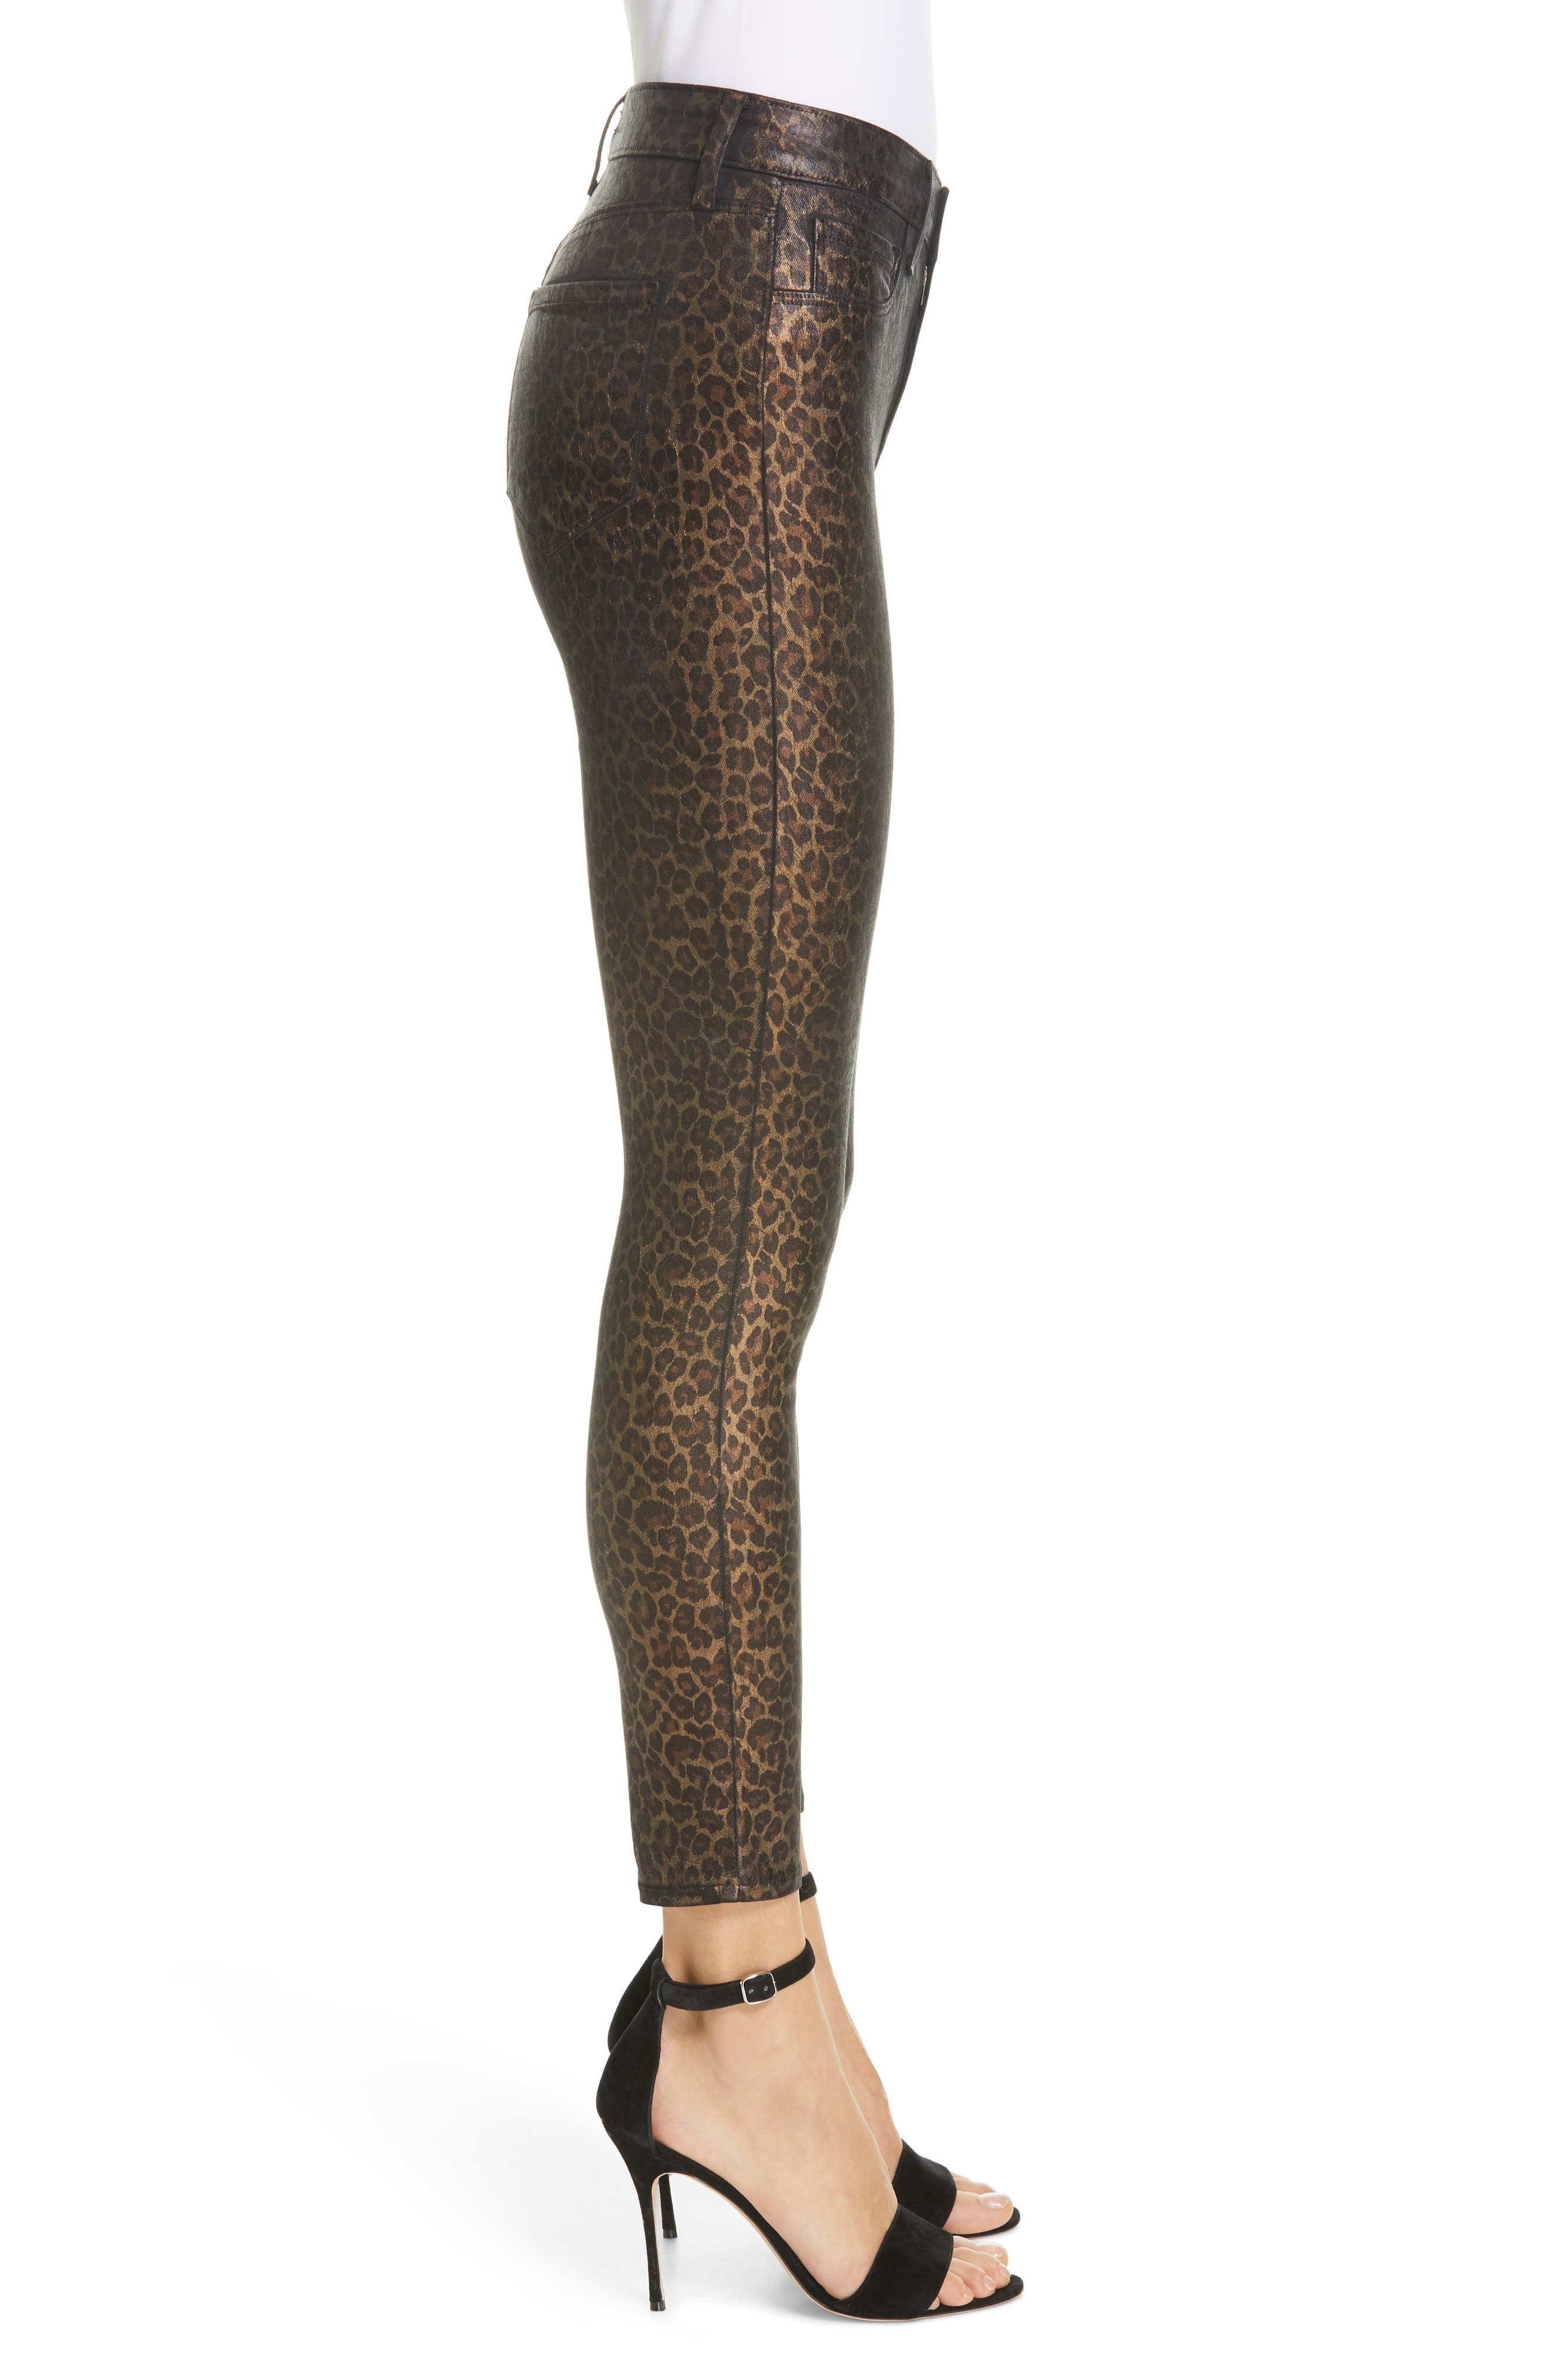 L'AGENCE, Margot Metallic Coated Crop Skinny Jeans, Alternate thumbnail 4, color, BLACK CHEETAH CRACKLE FOIL